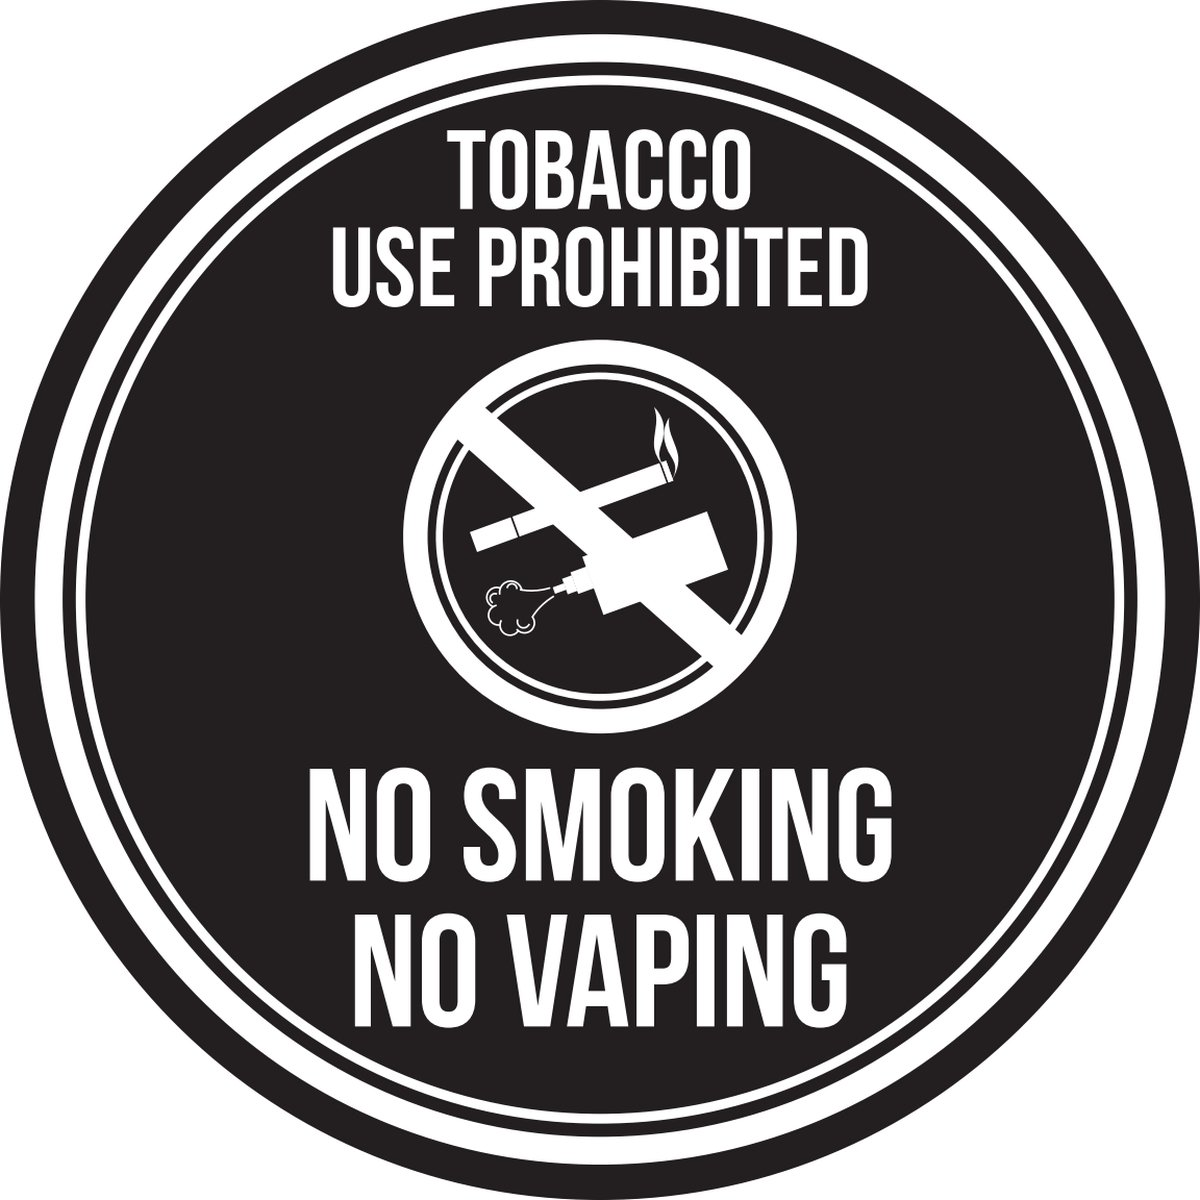 iCandy Products Inc Tobacco Use Prohibited No Smoking No Vaping Black and White Safety Warning Round Sign - 12 Inch, Plastic by iCandy Products Inc (Image #1)